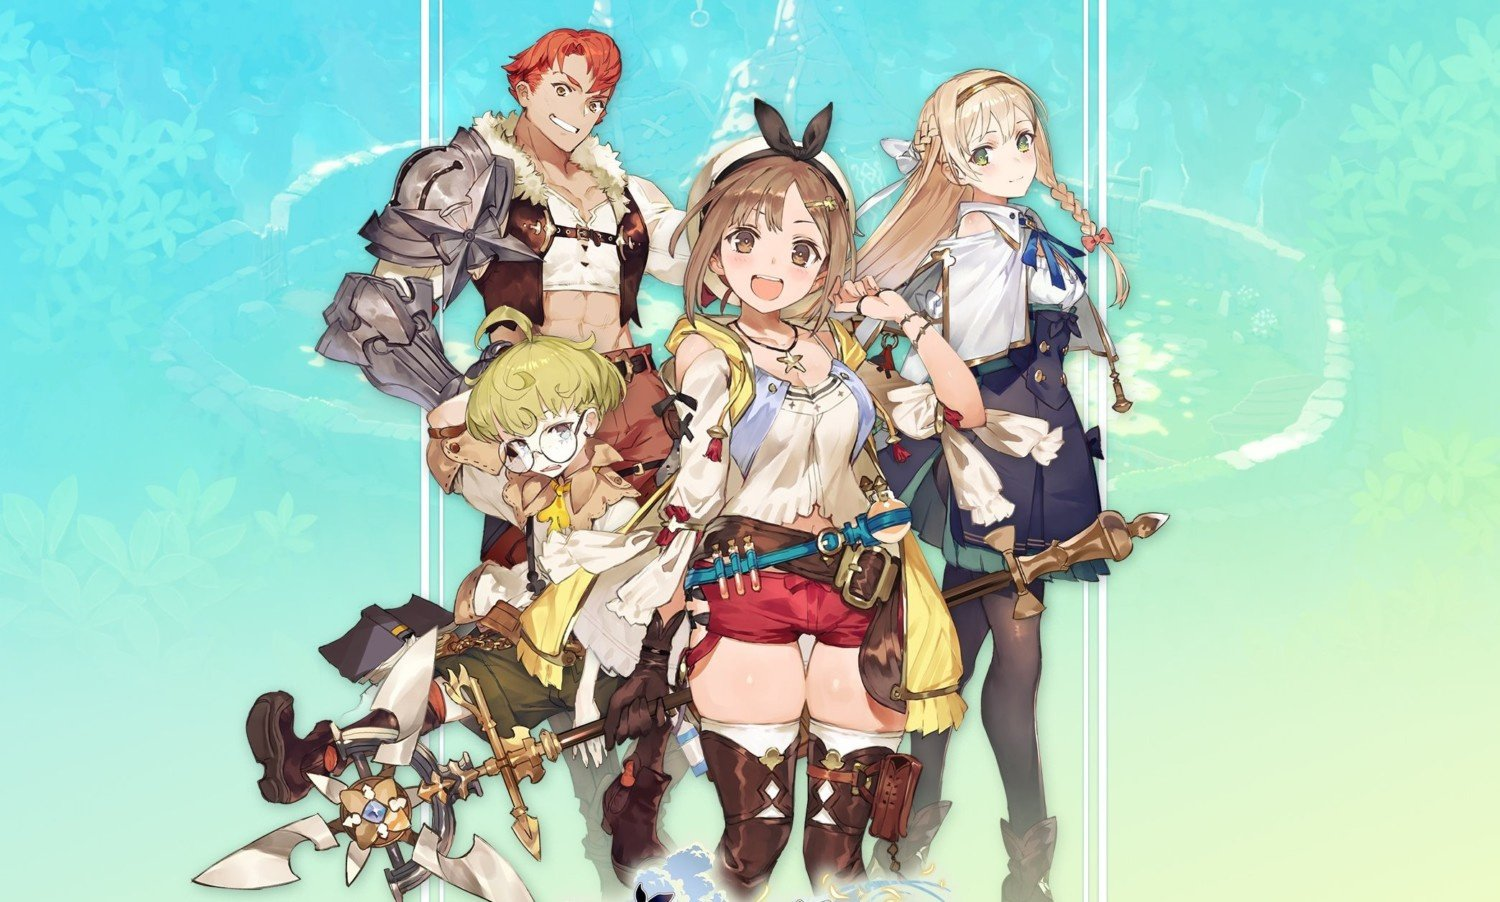 Atelier Ryza Producer Surprised That Fans Find Lead Character So Sexy